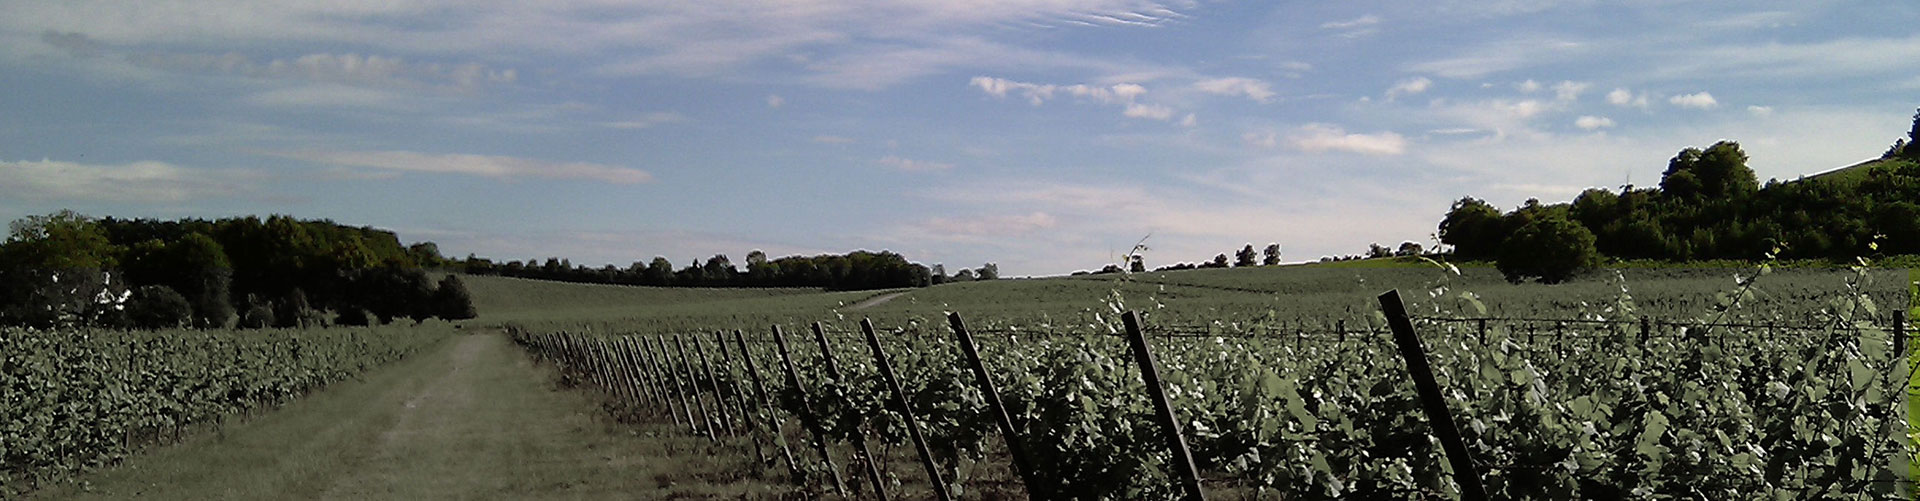 A landscape view of vineyard looking towards open countryside